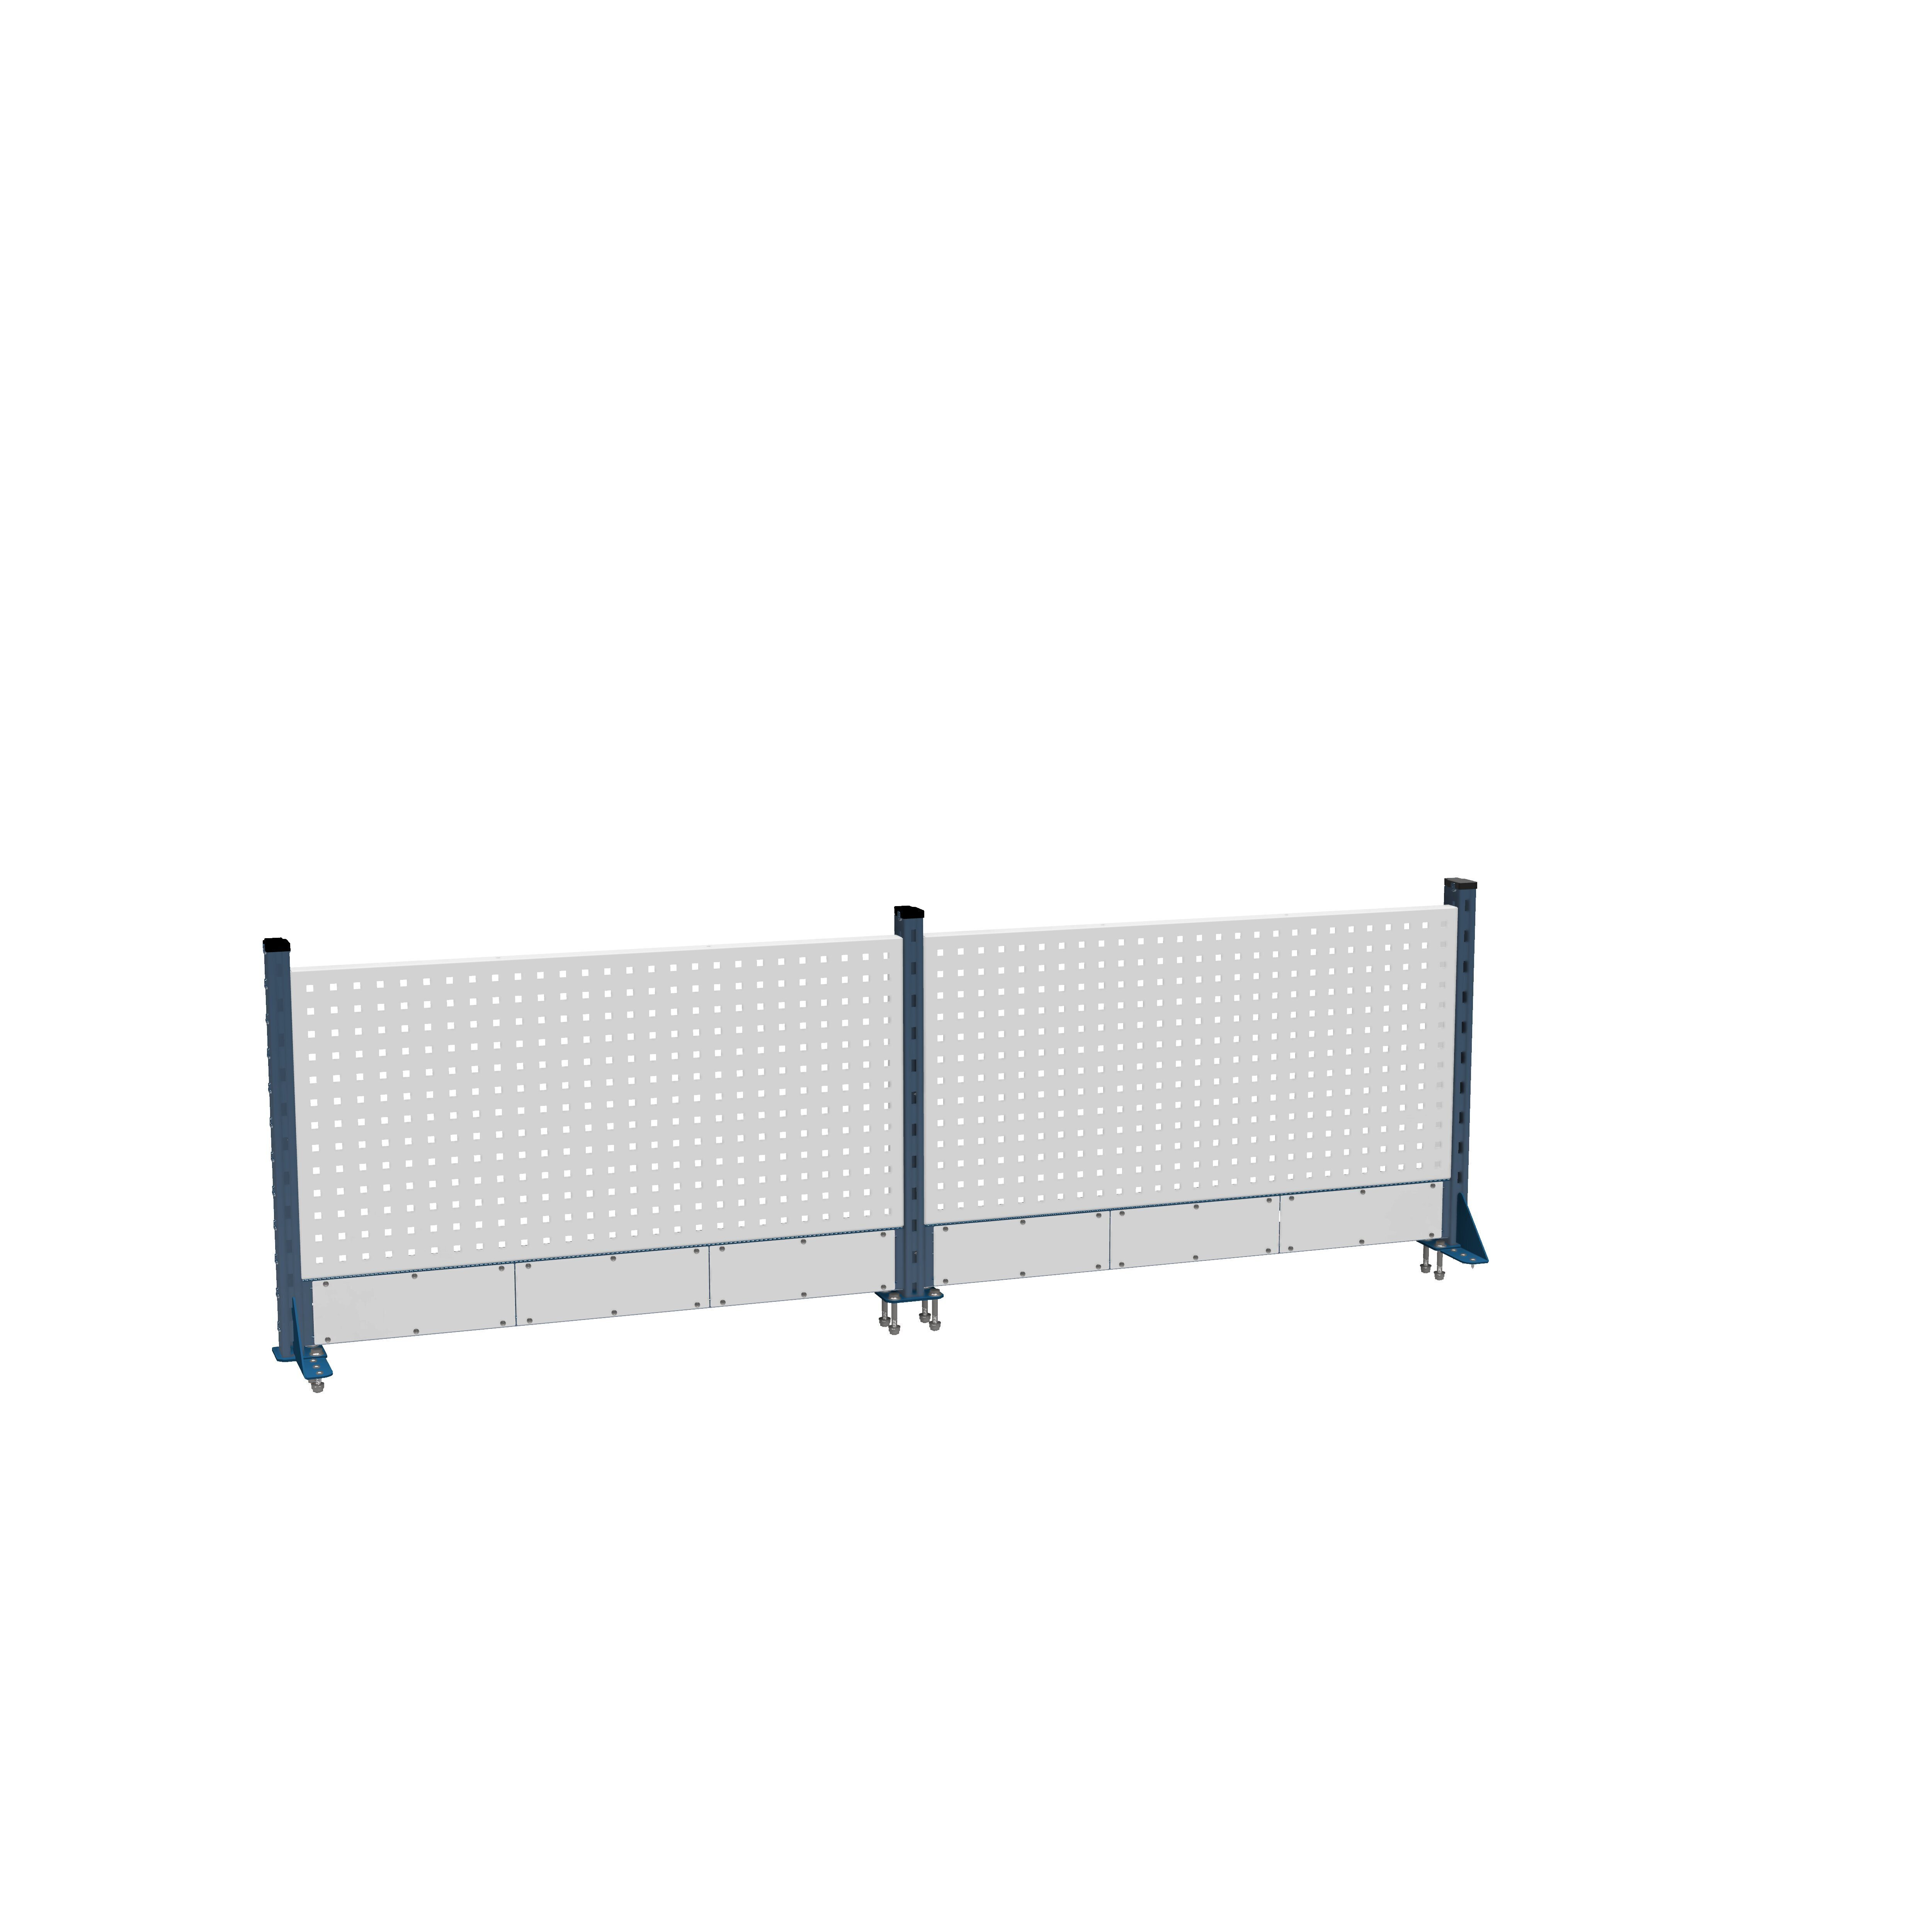 DiKom Perforated Panel VS-200-E1